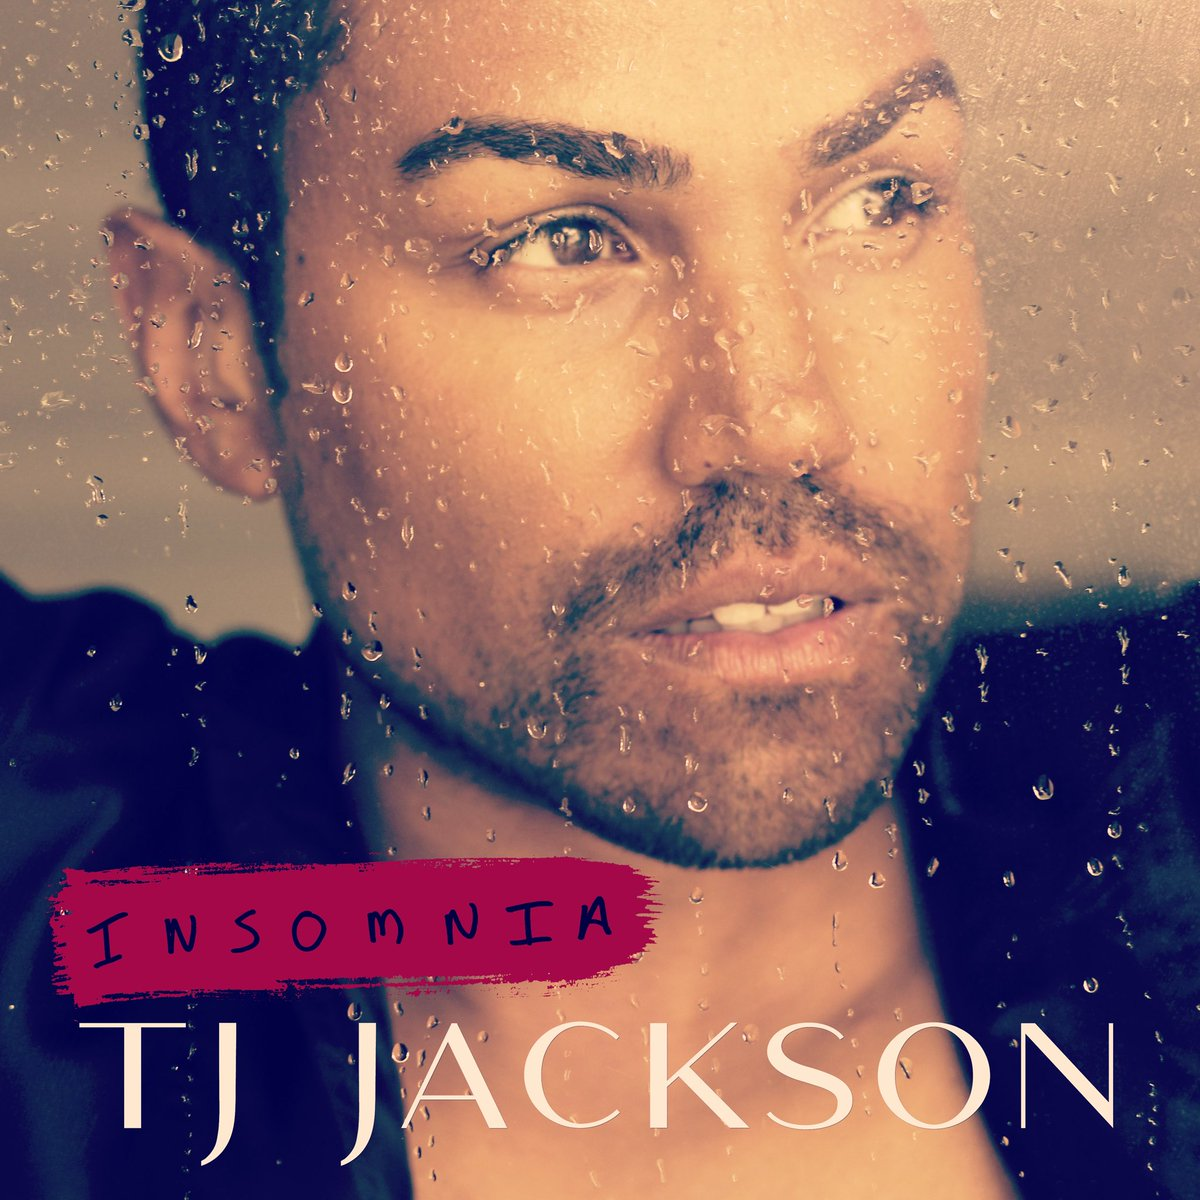 TJ Jackson Nephew of Michael Jackson Drops New Single 'Insomnia'